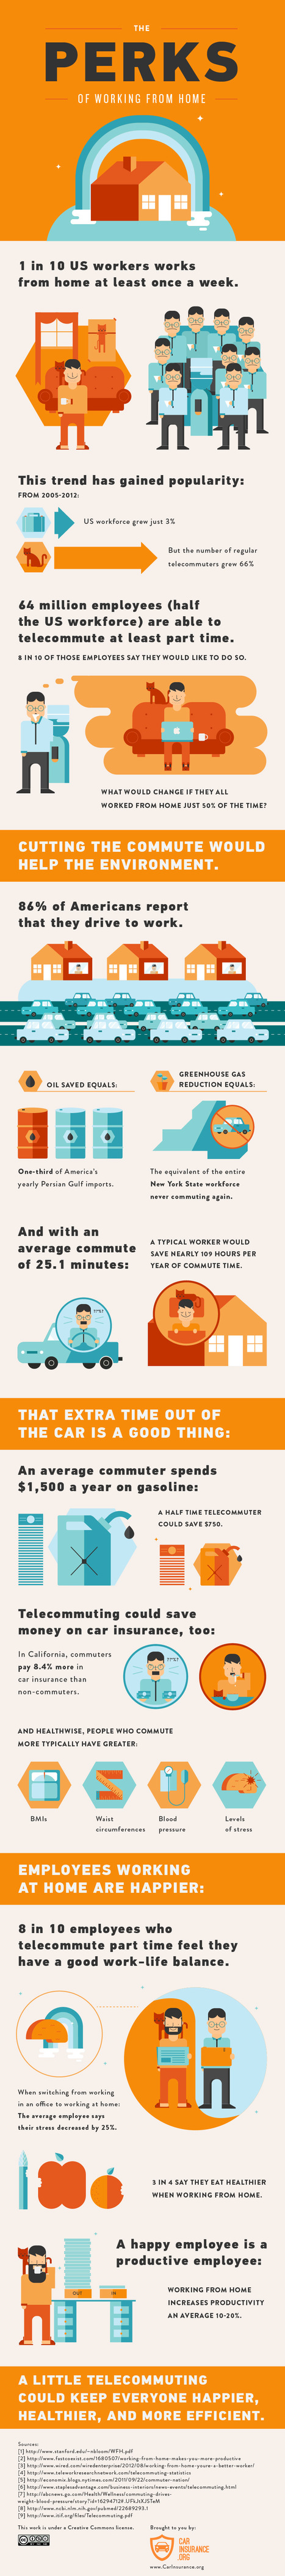 Telecommuting: The Benefits of Working From Home (Infographic)   Mobile Marketing for Mobile People   Scoop.it